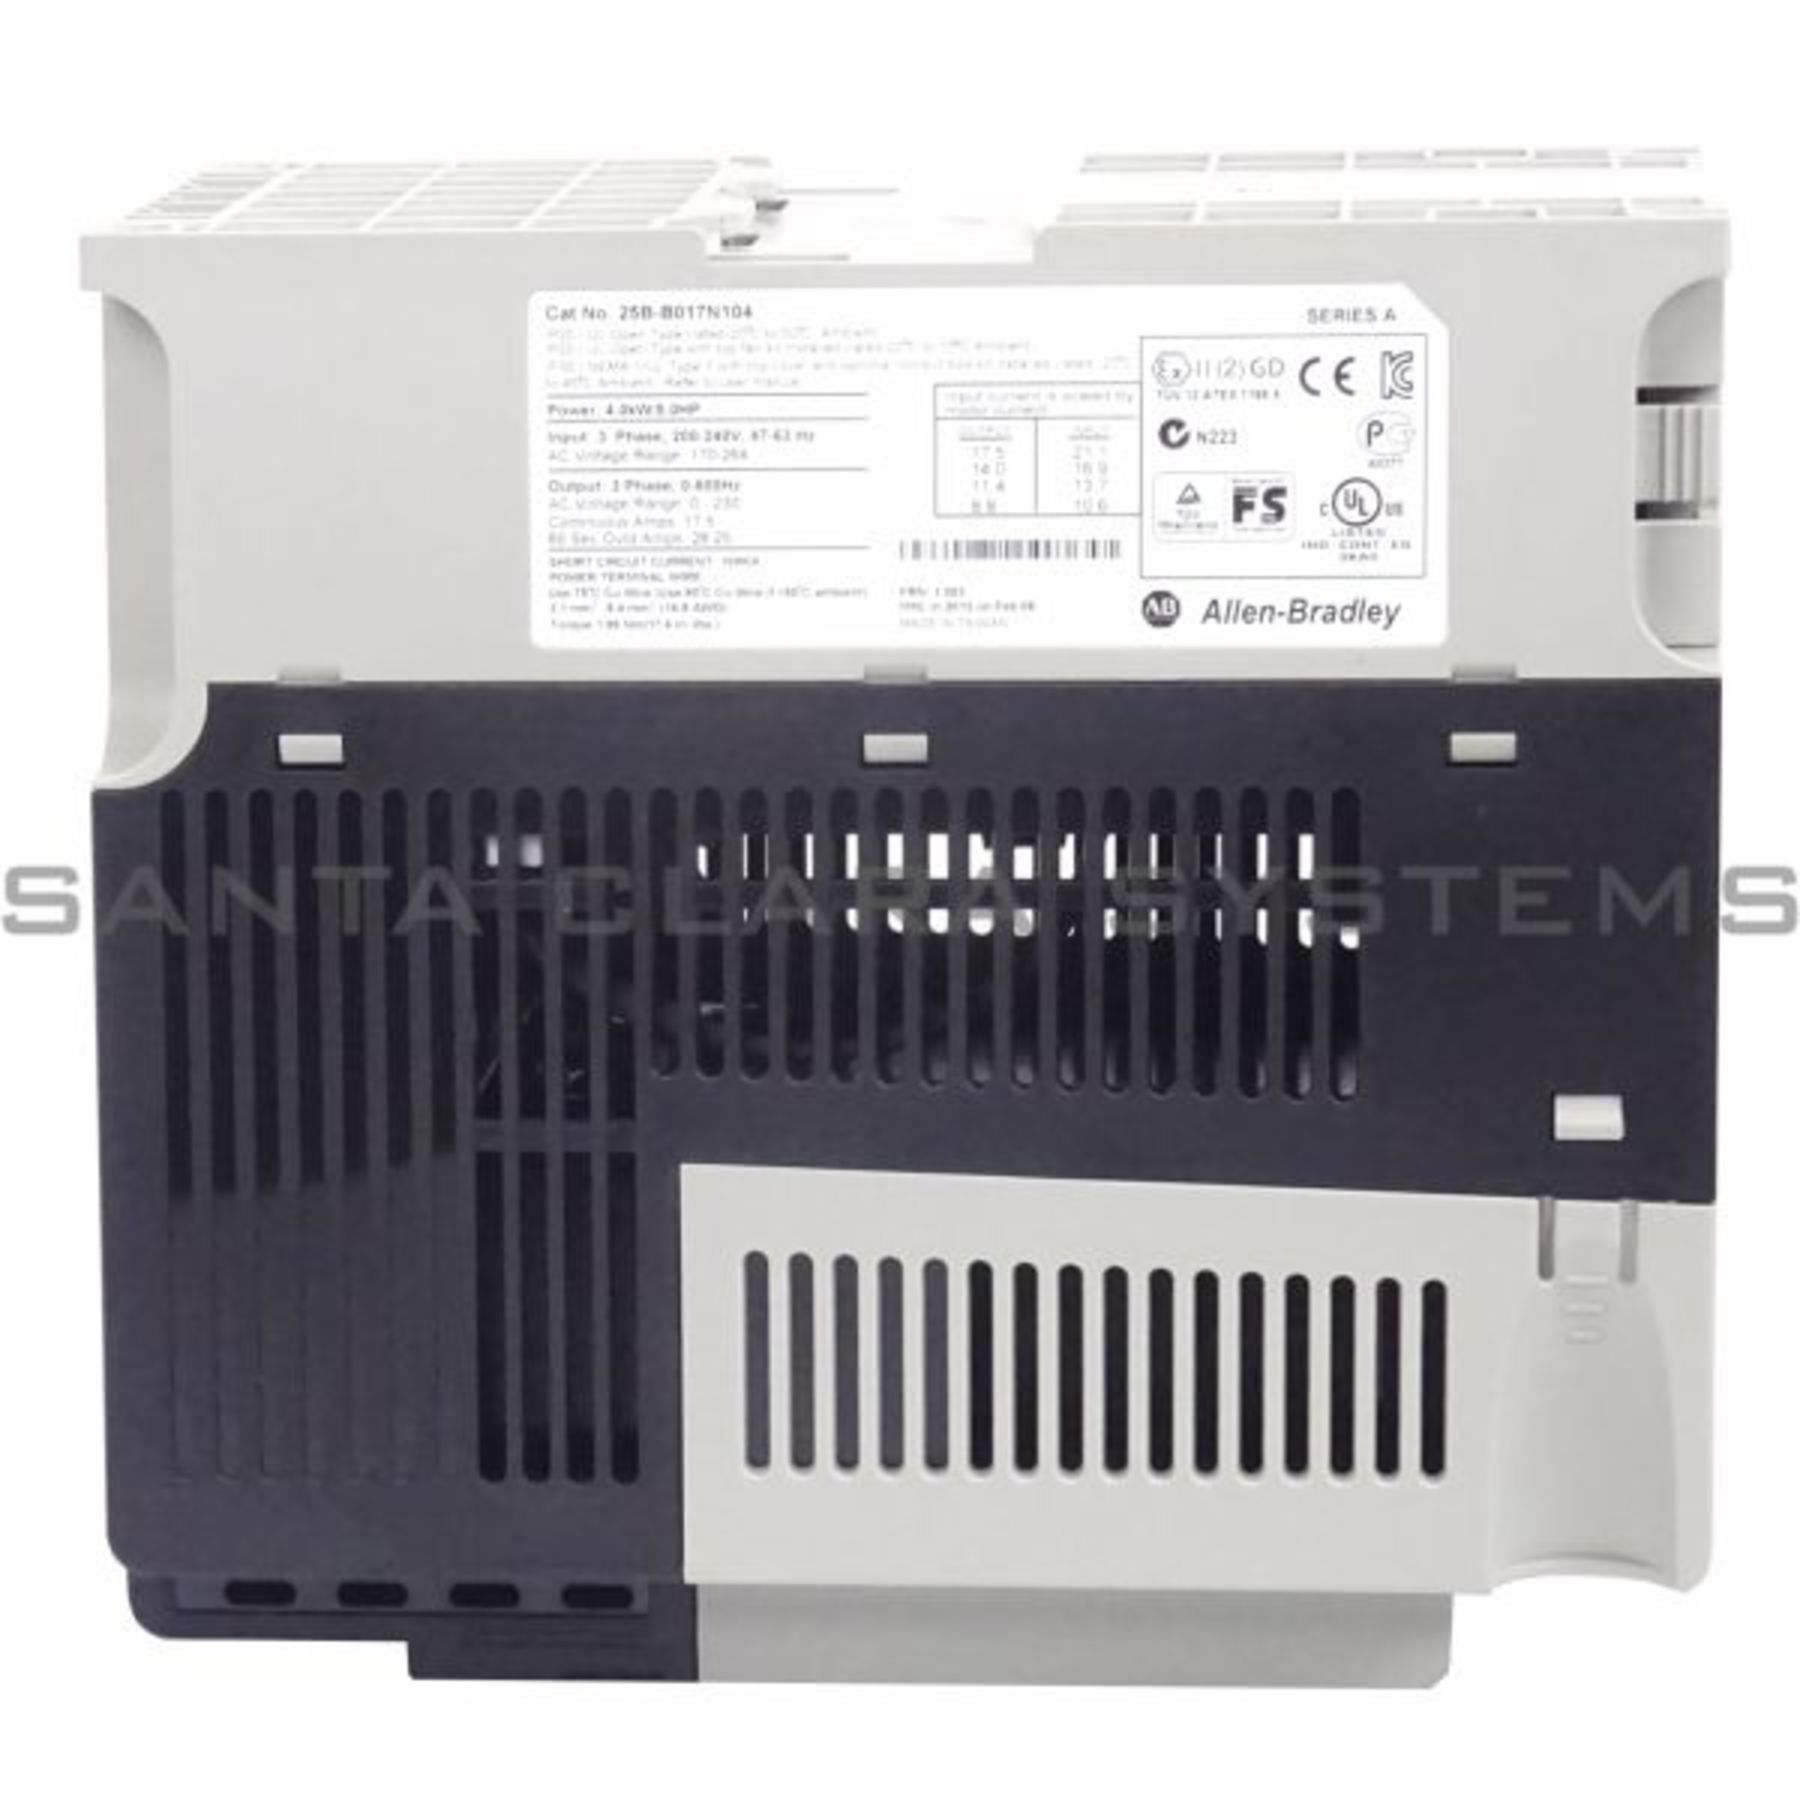 25B-B017N104 Allen Bradley In stock and ready to ship